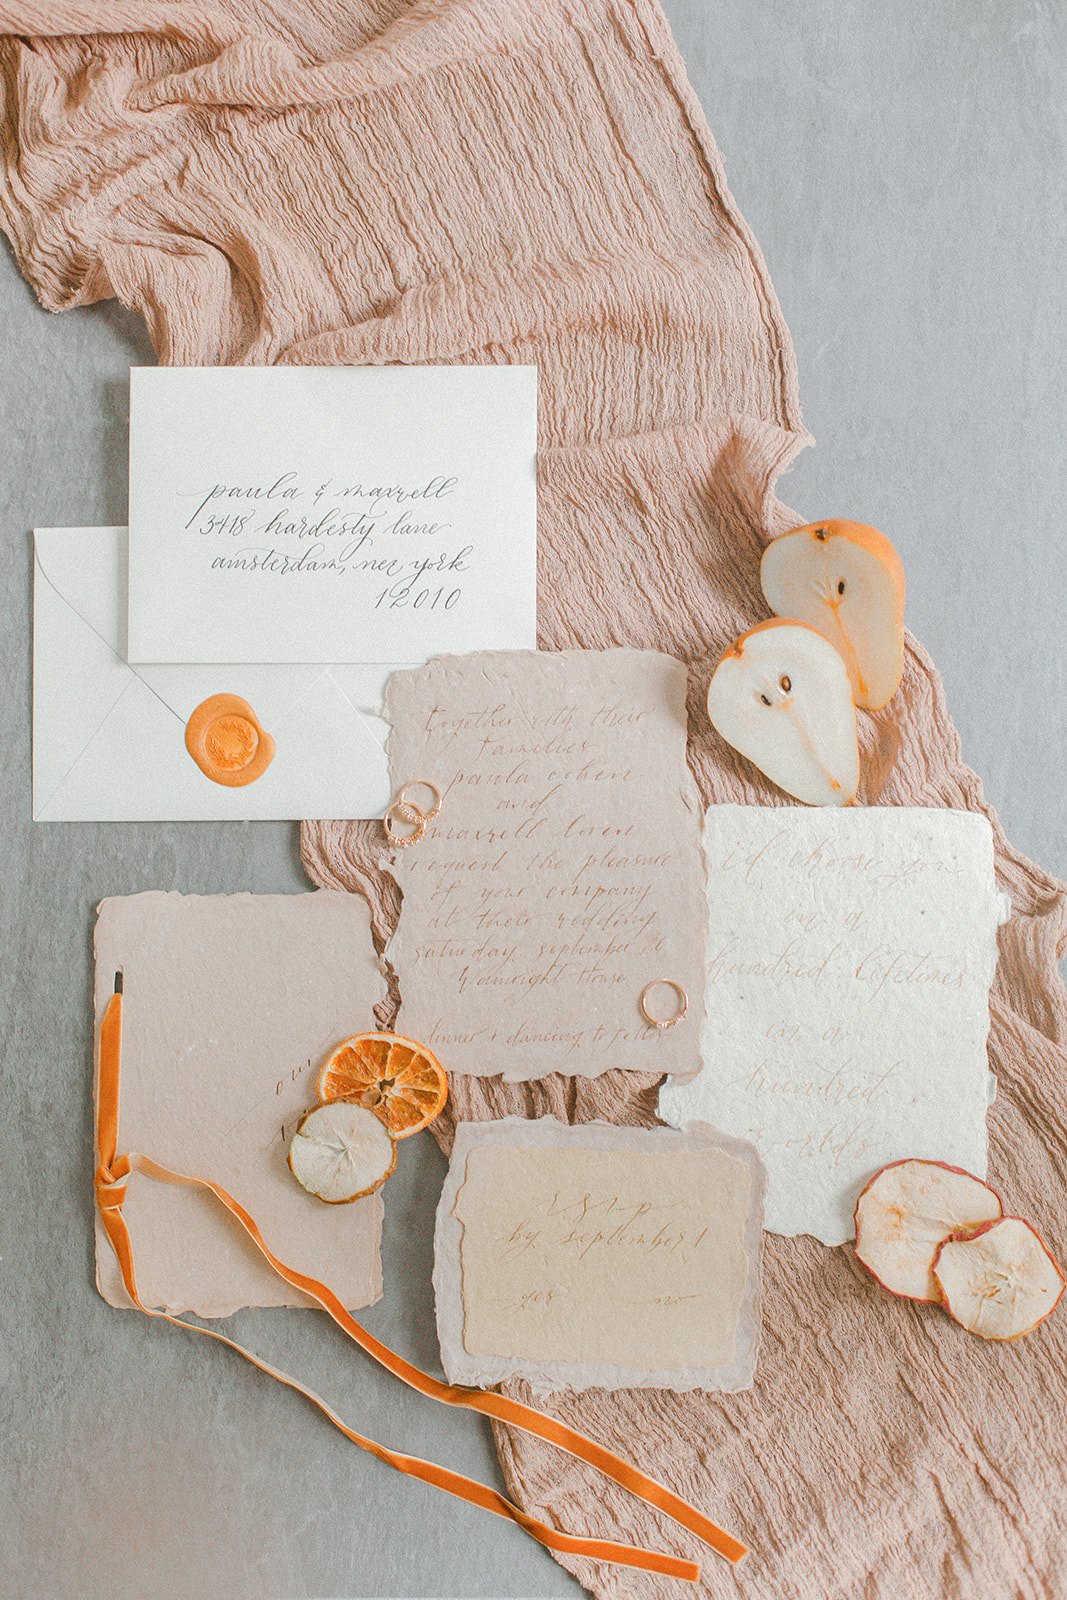 Dreamy Autumn Inspired Wedding Invitations - Kevin & Aly Photography